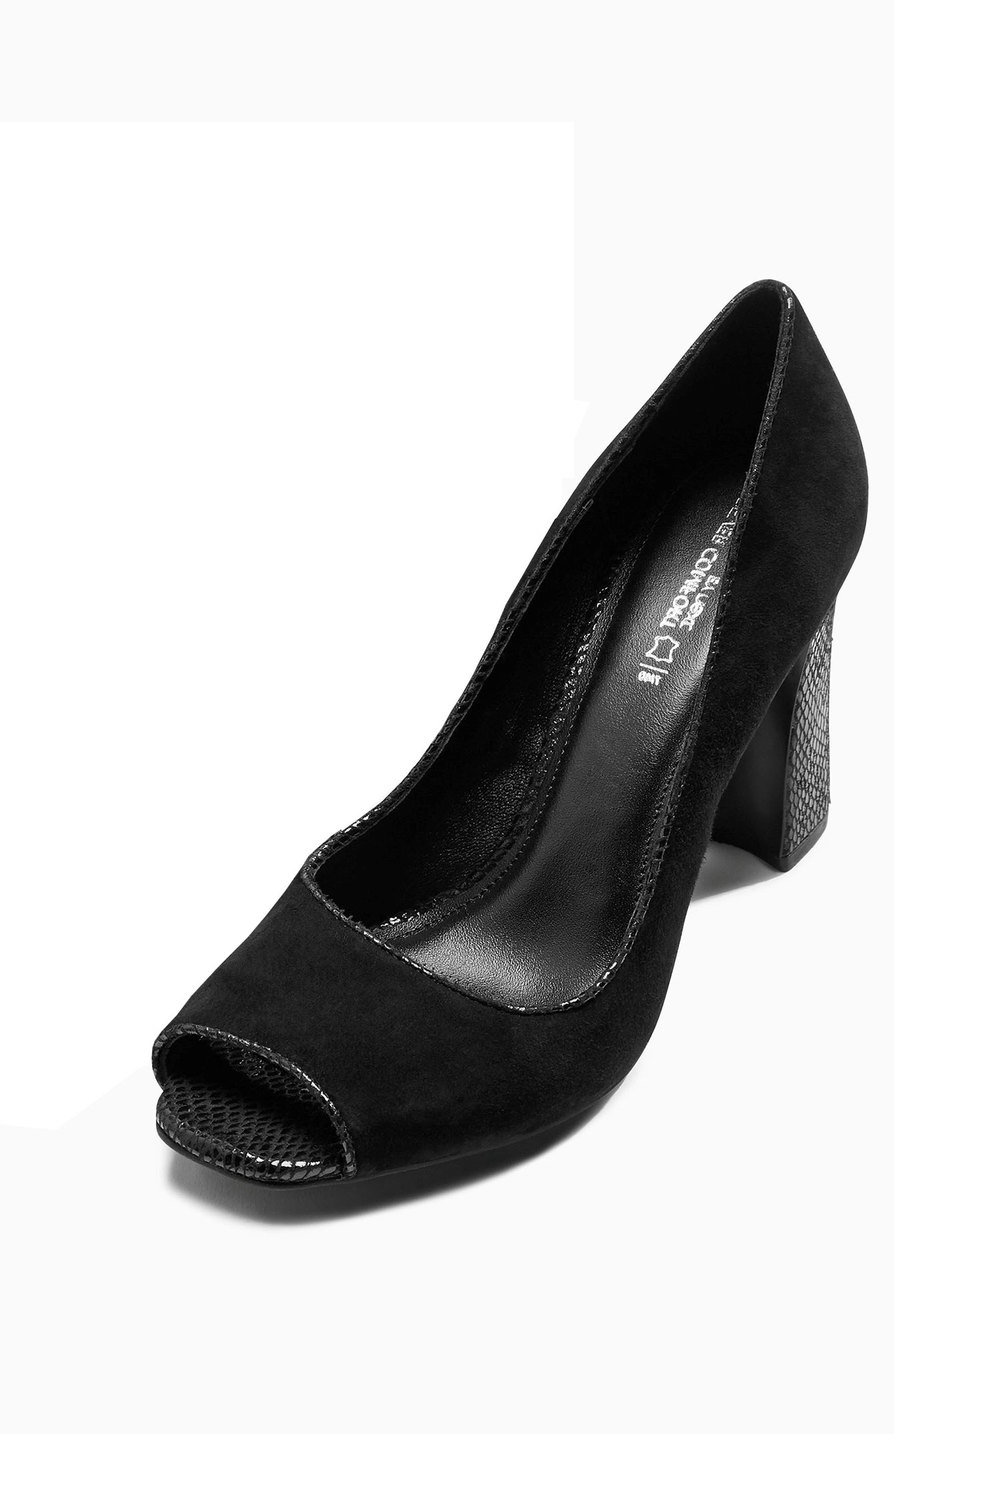 050ad2c2a67 Next Forever Comfort Leather Peep Toe Shoes Online